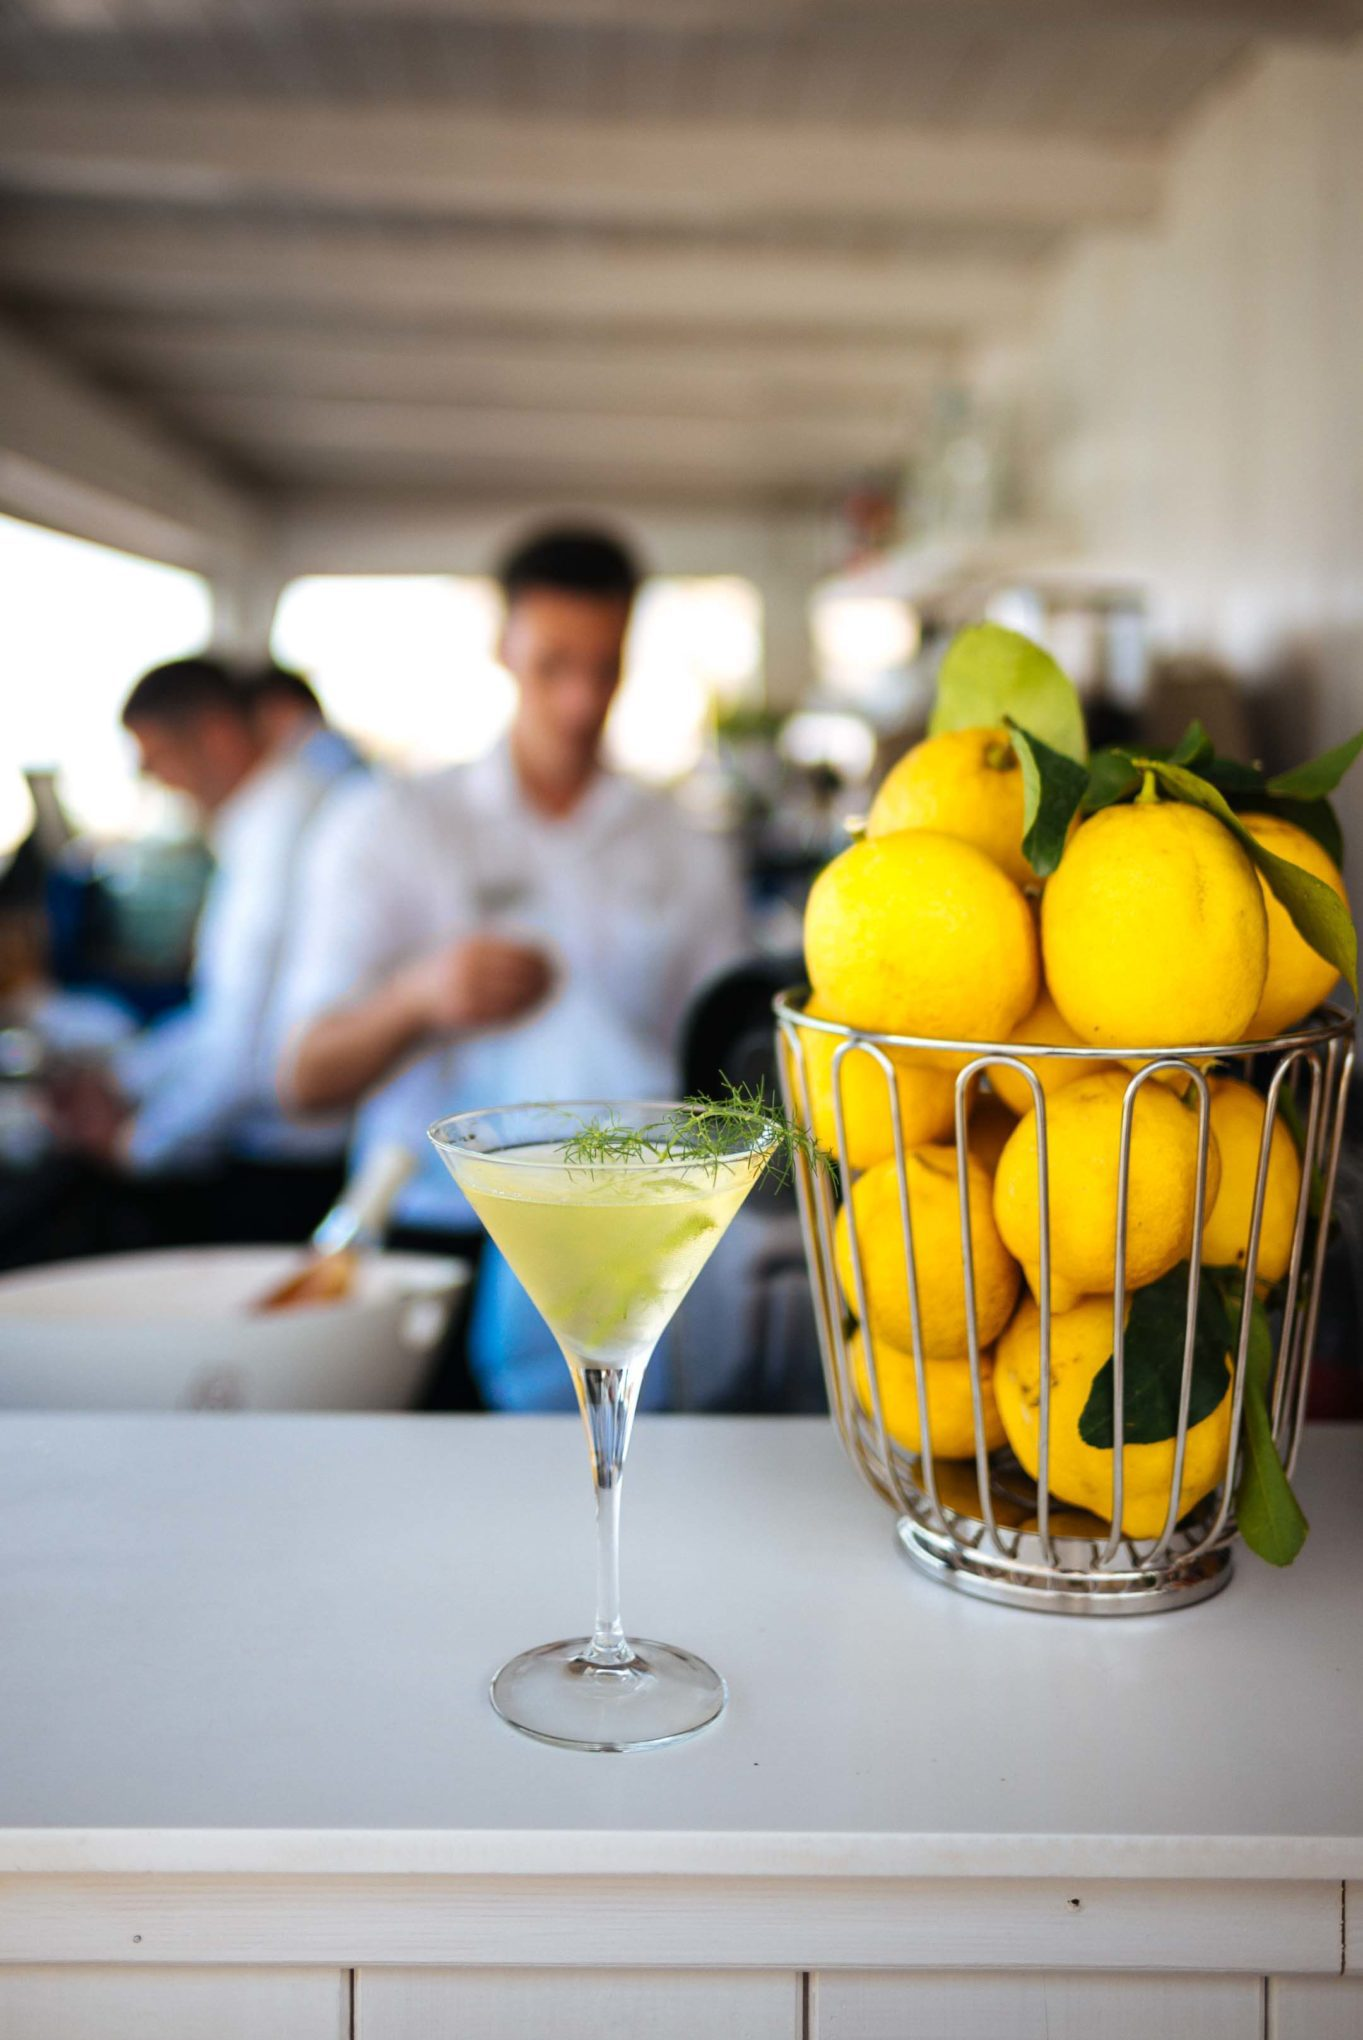 The Taste SF shares the recipe for the Mare Nostrum gin cocktail at La Plage Resort, Taormina Sicily Italy